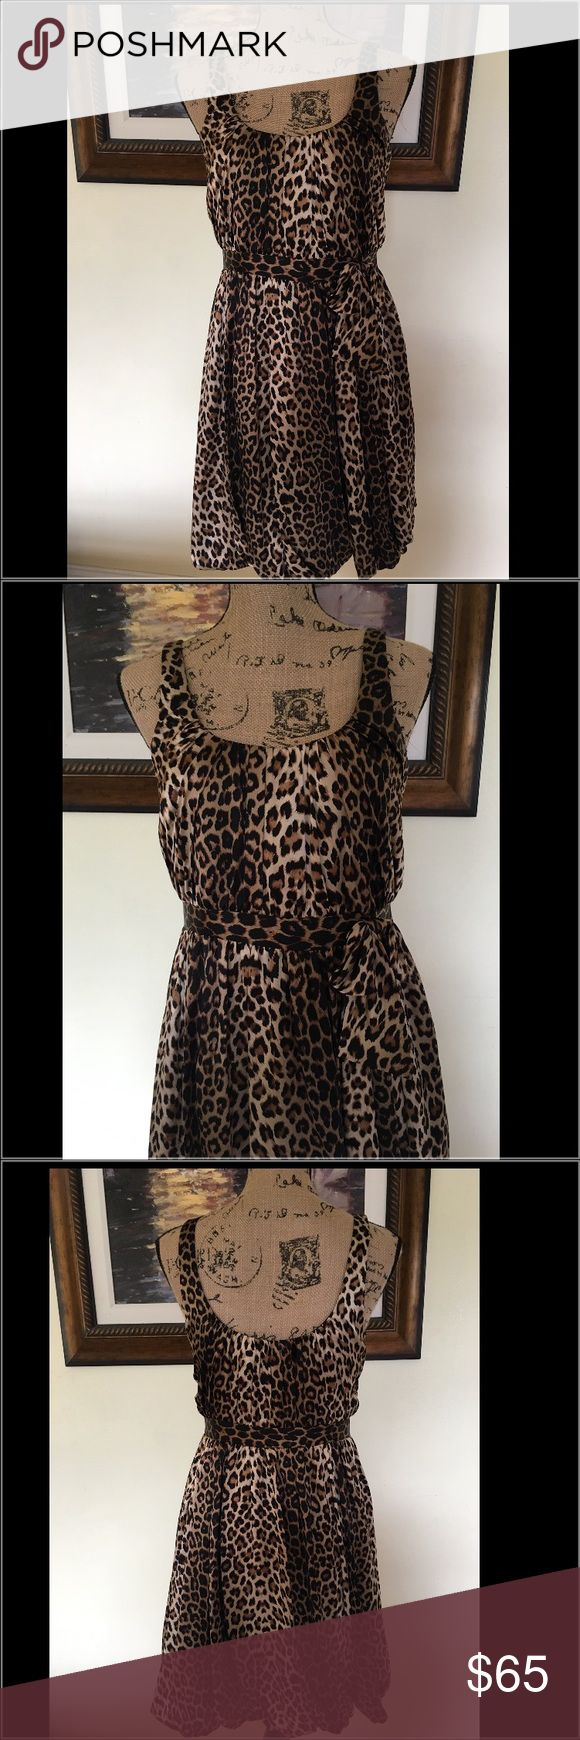 Laundry by Shelli Segal Leopard Dress Laundry by Shelli Segal Leopard Dress.  Worn once to a party.  Complete this outfit with a clutch bag and a pair of stilettos! Laundry by Shelli Segal Dresses Mini